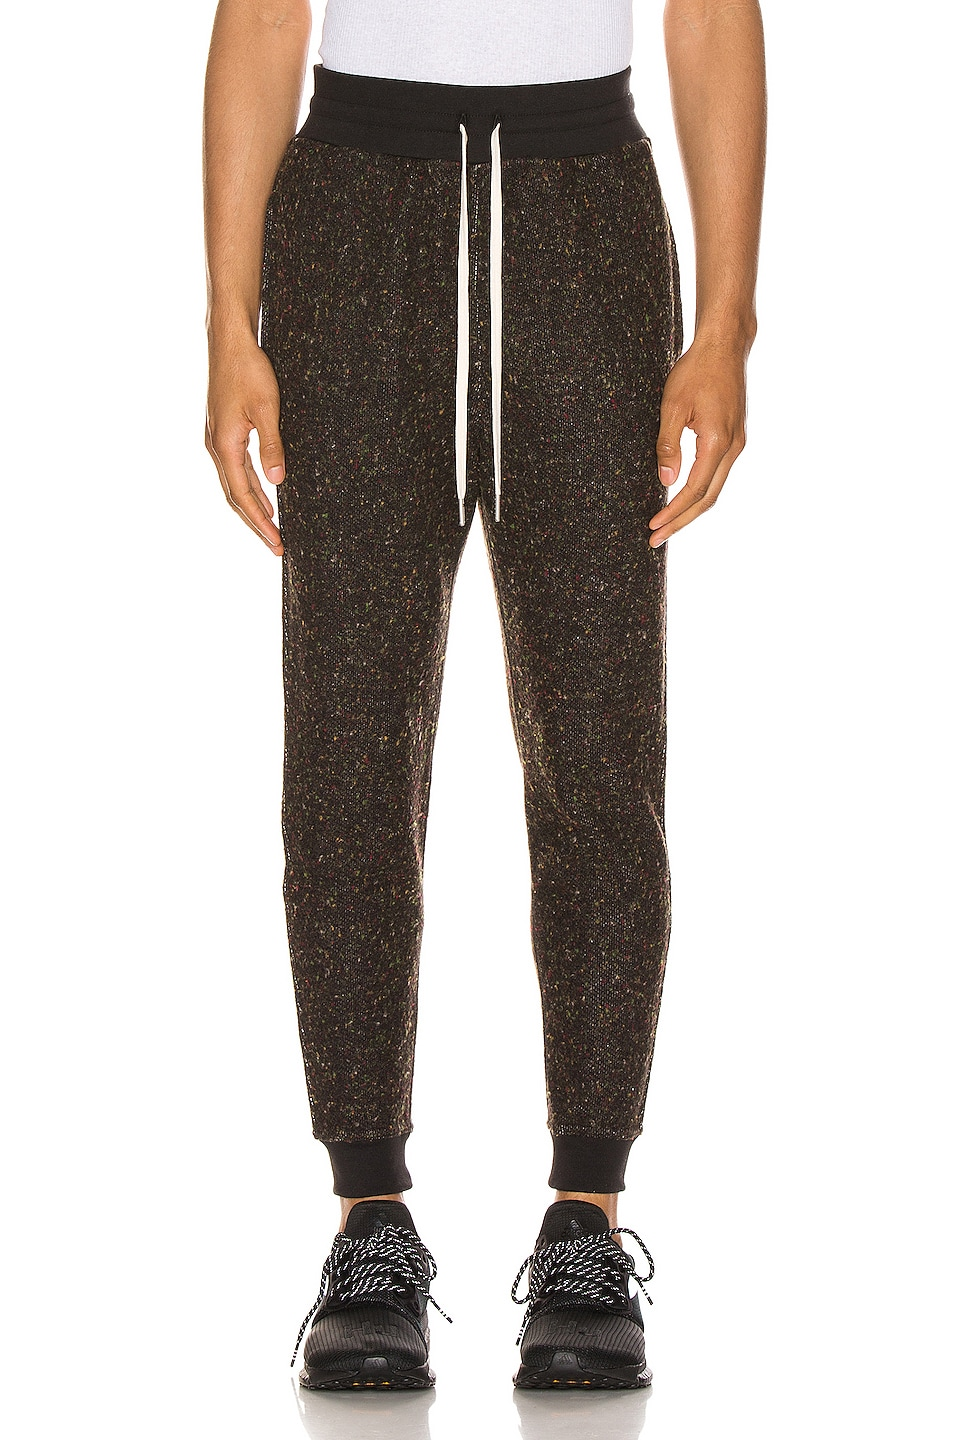 John Elliott Pants Fireside Ebisu Sweatpants